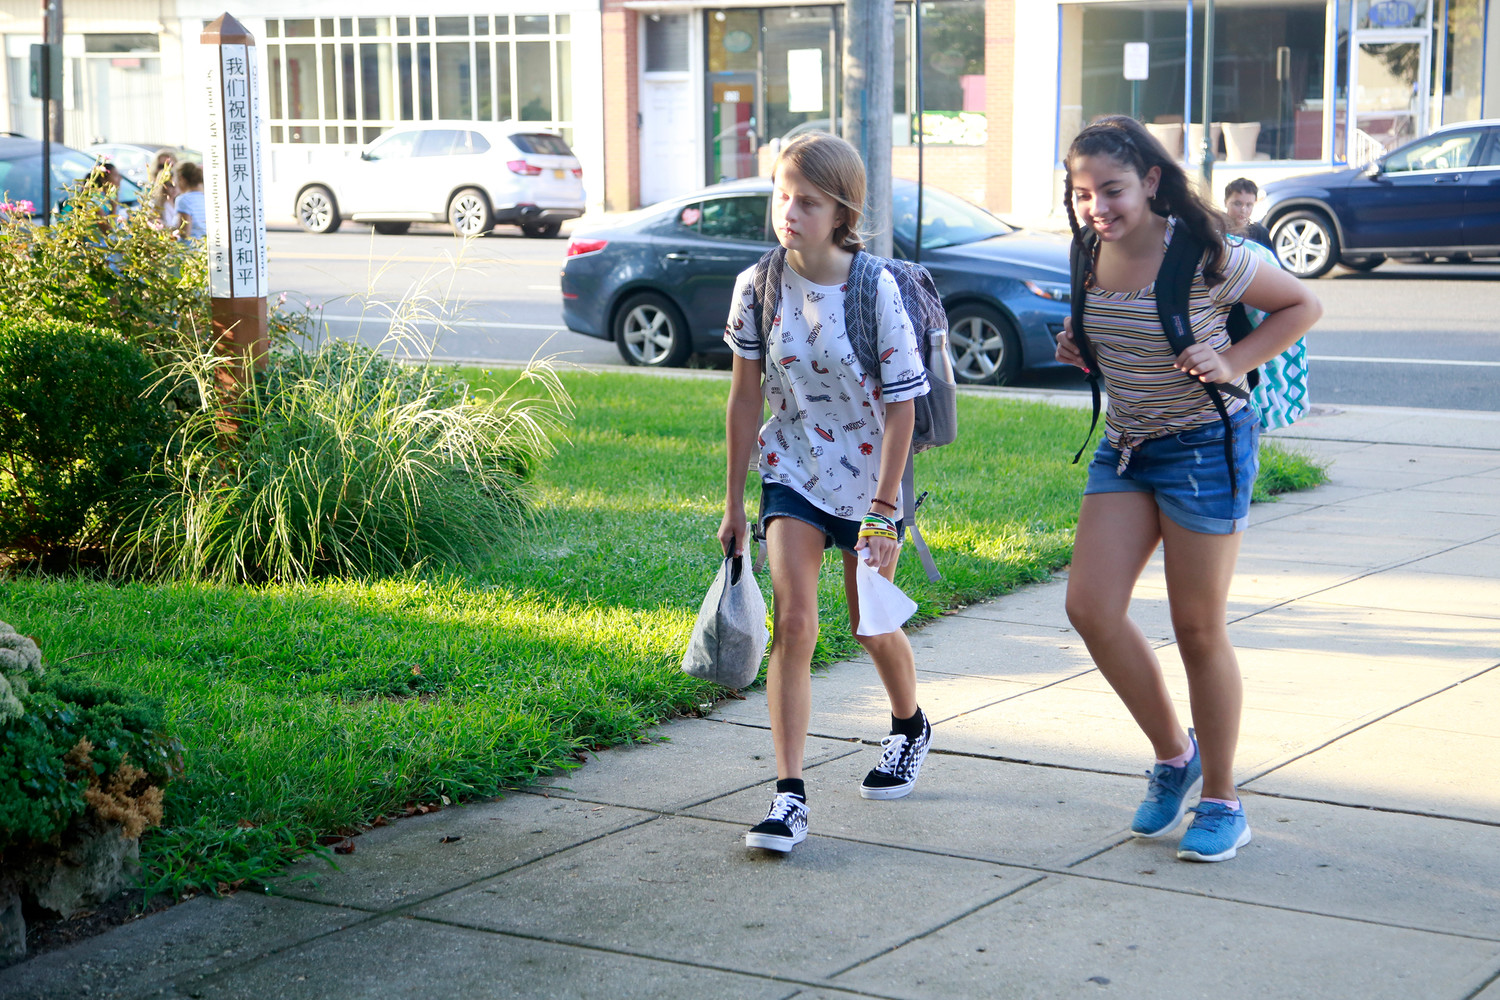 It was mixed emotions for sixth-graders Chloe Brown, left, and Bobbie Applebaum as they arrived at Lynbrook North Middle School for the first time.